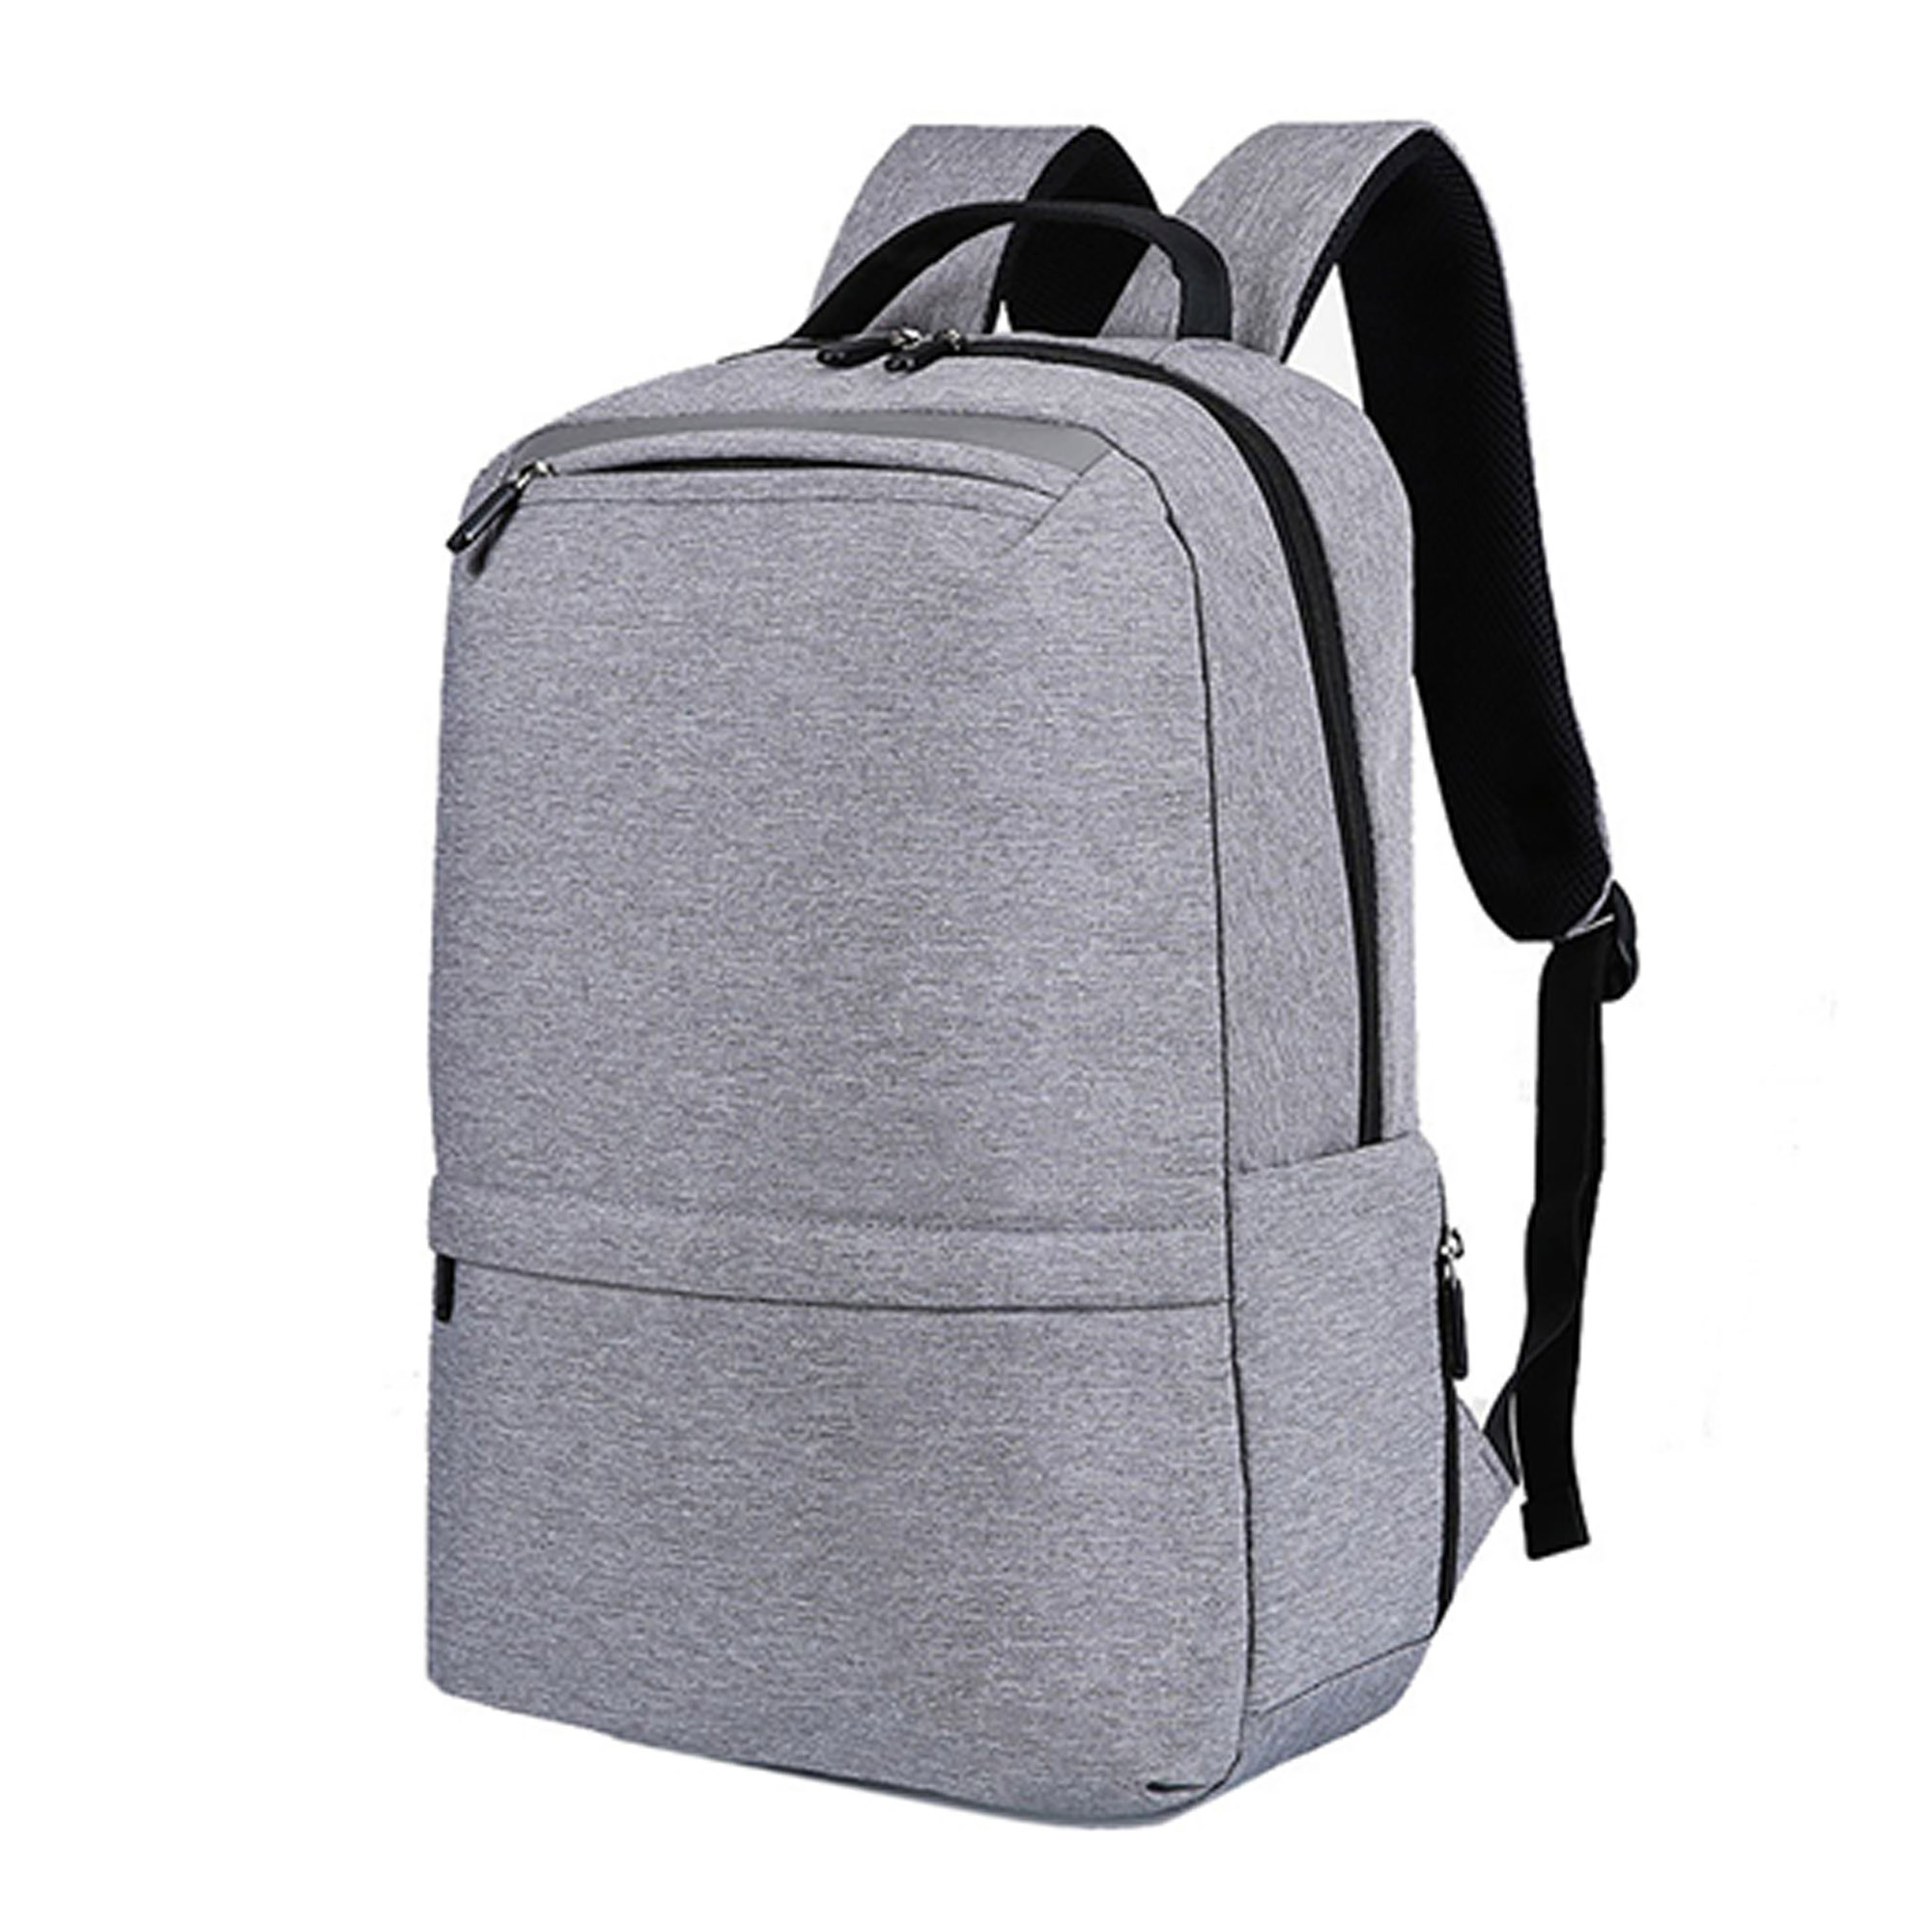 Techpac Laptop Backpack Bag